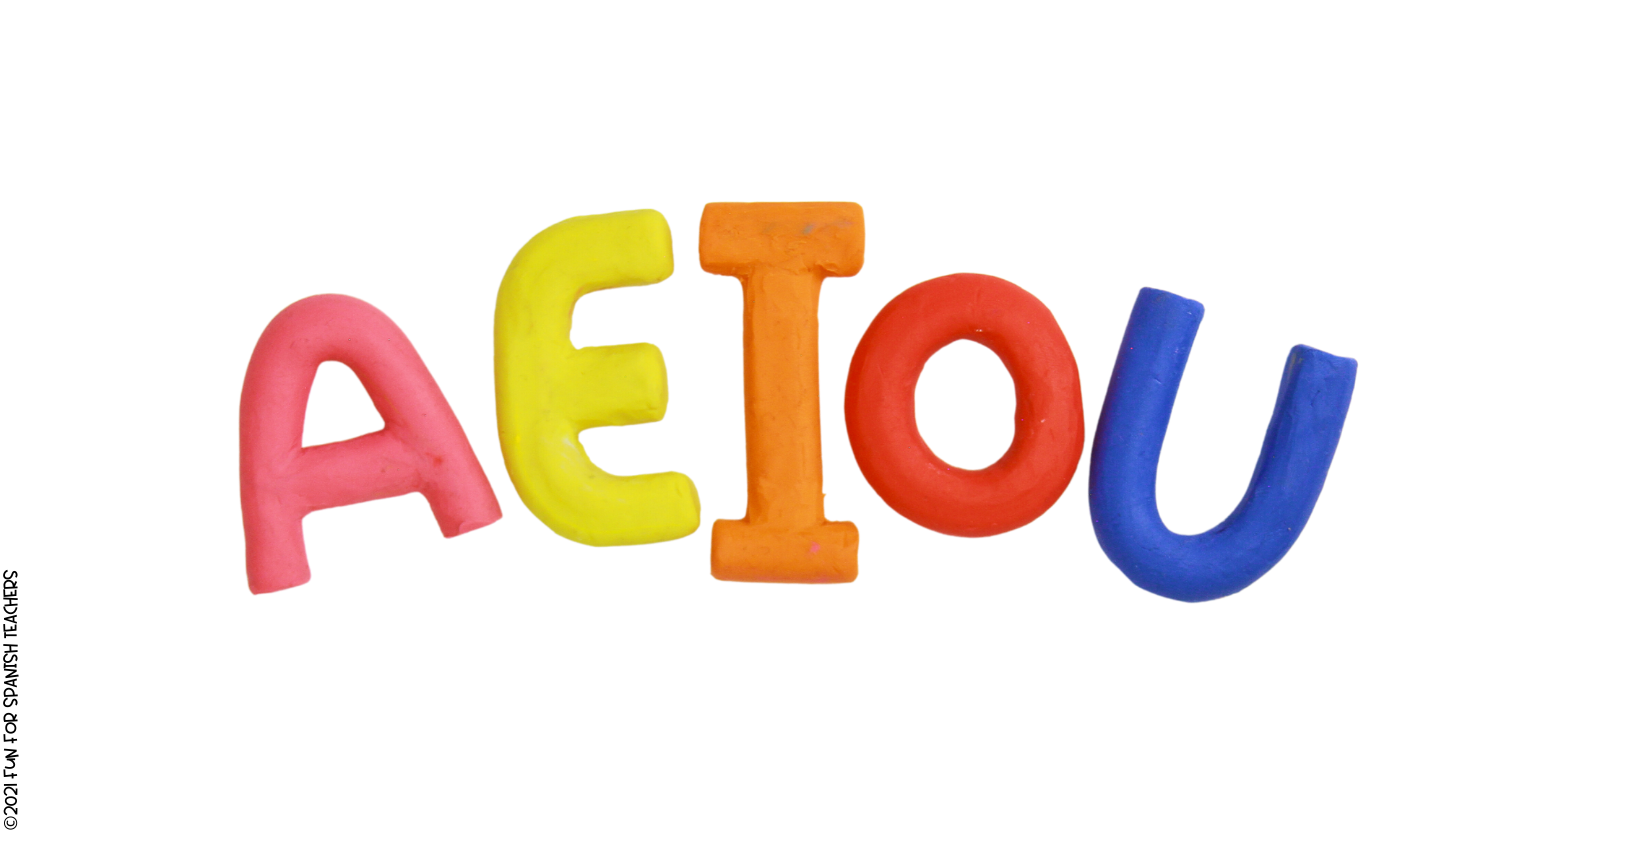 INCORPORATING VOWELS IN ELEMENTARY SPANISH